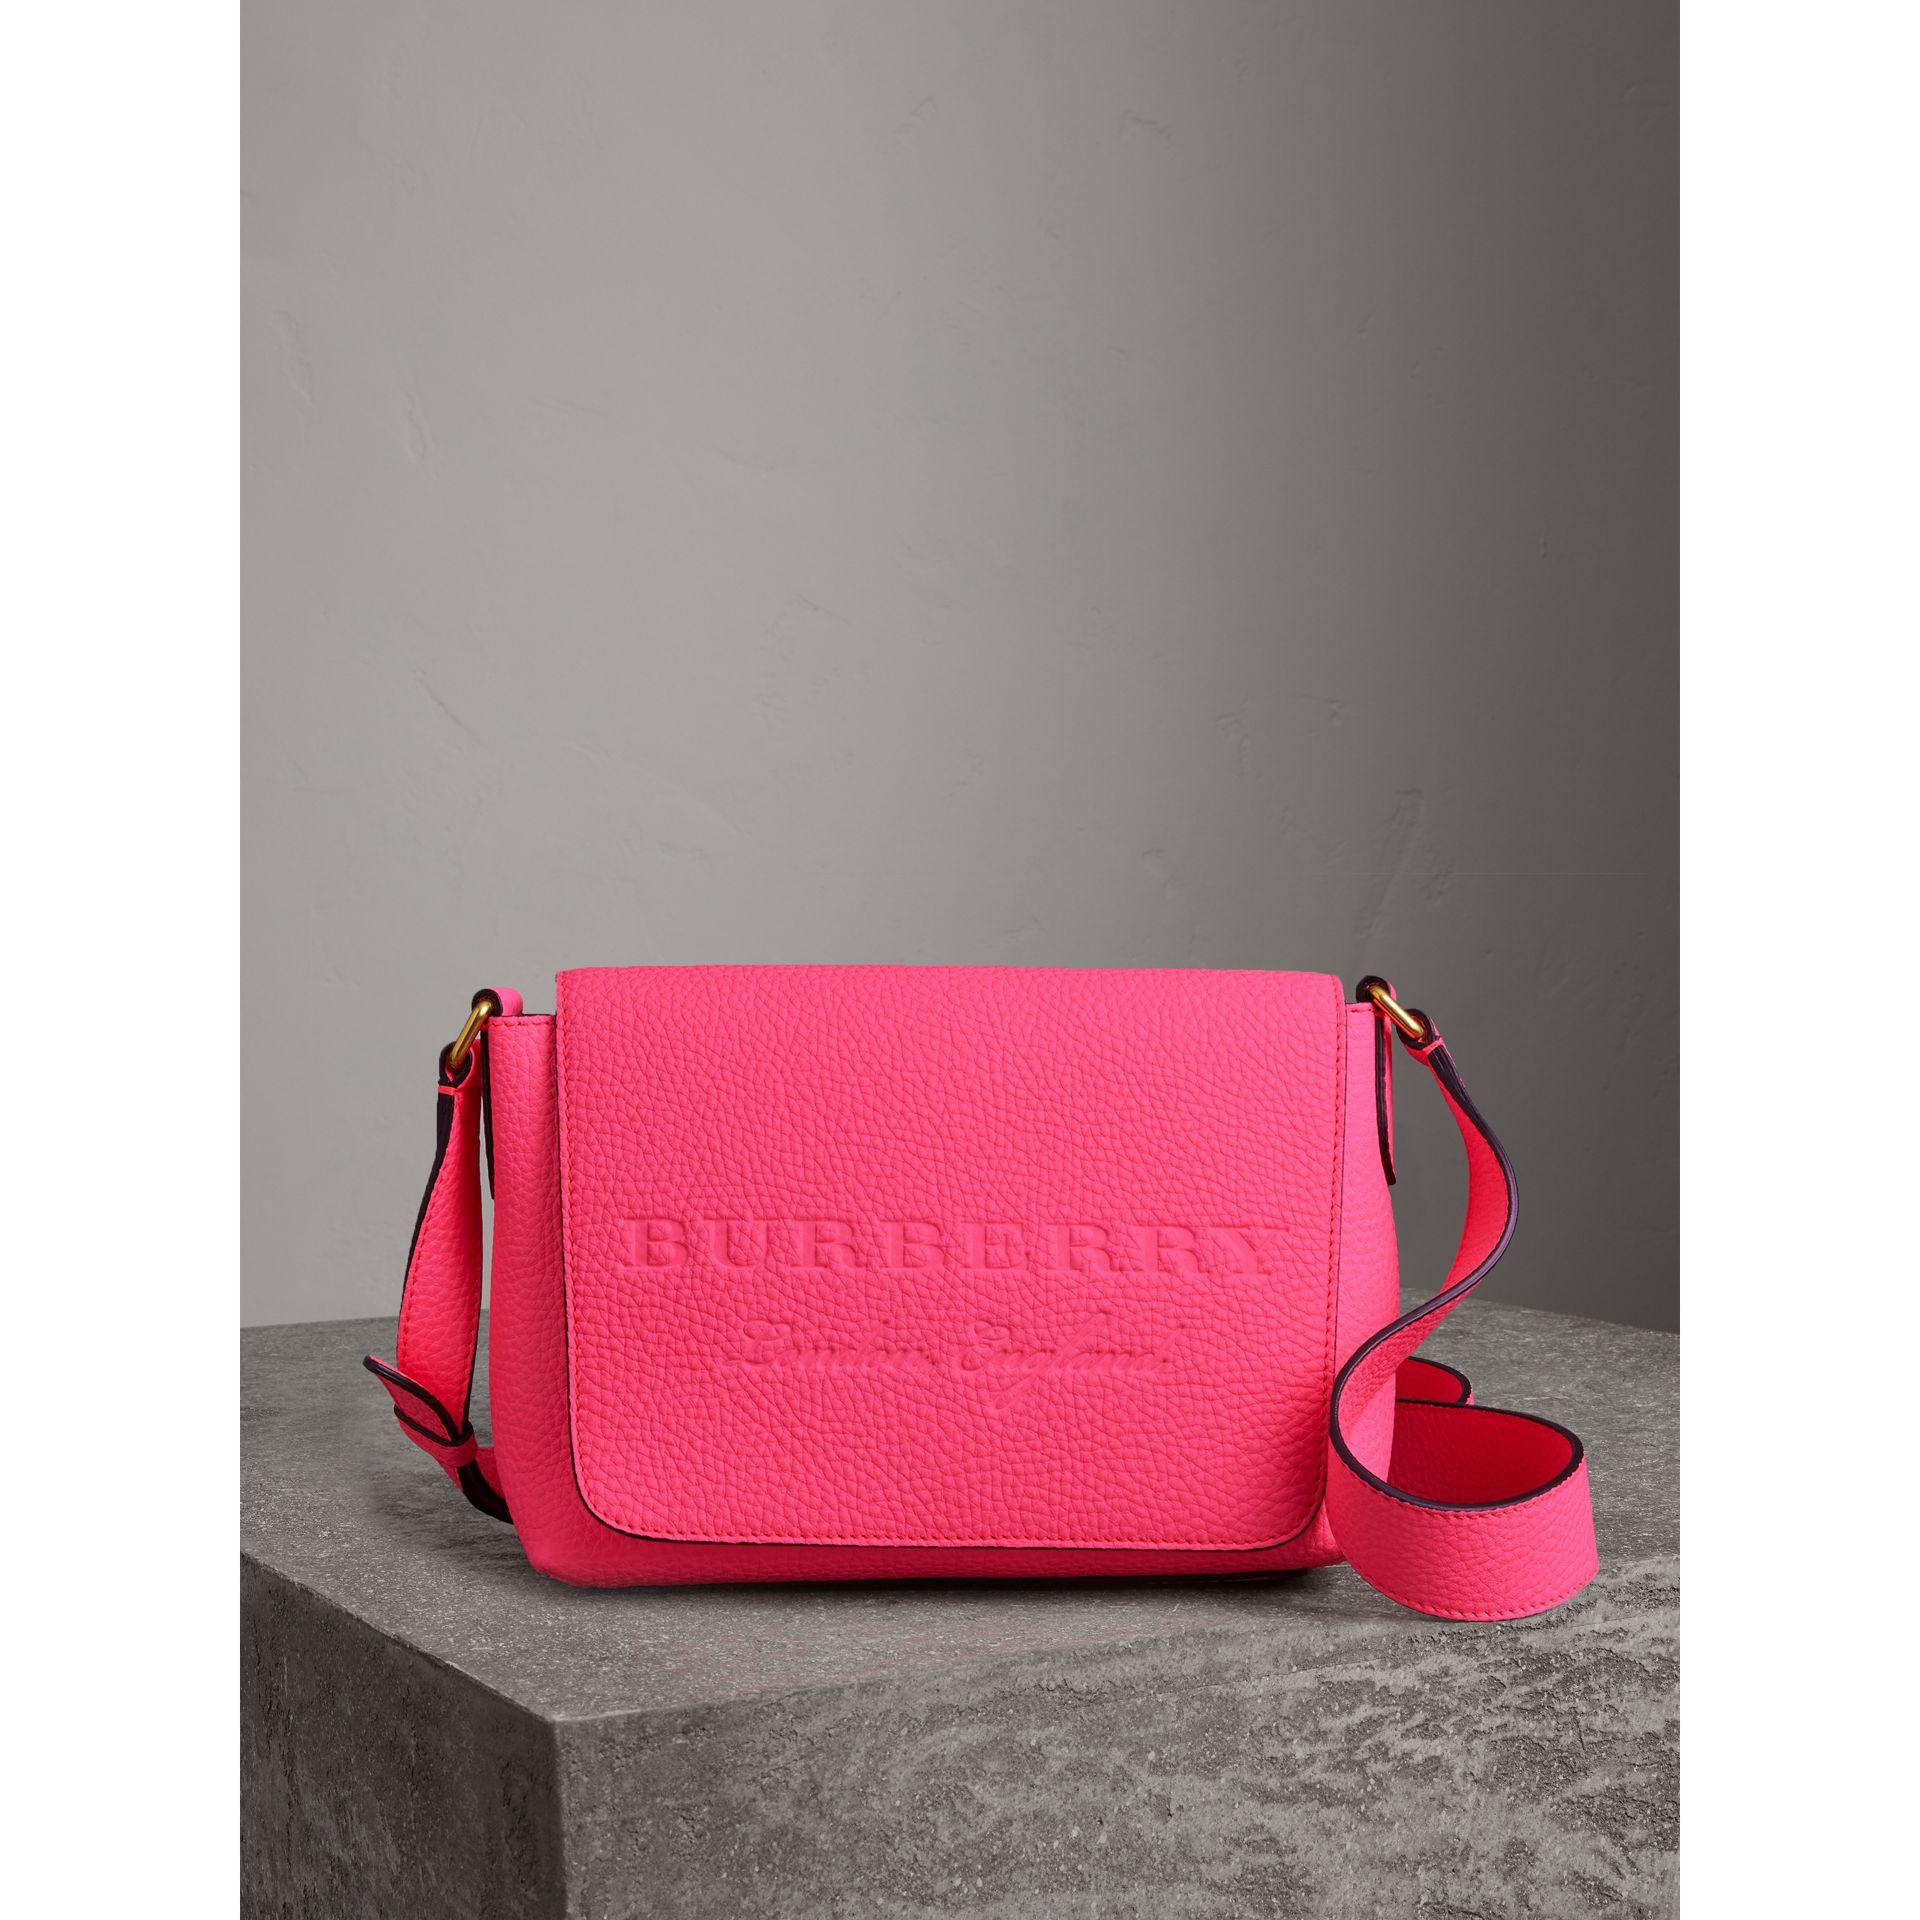 7ec7cb7e2713 Burberry Small Embossed Neon Leather Messenger Bag In Neon Pink ...